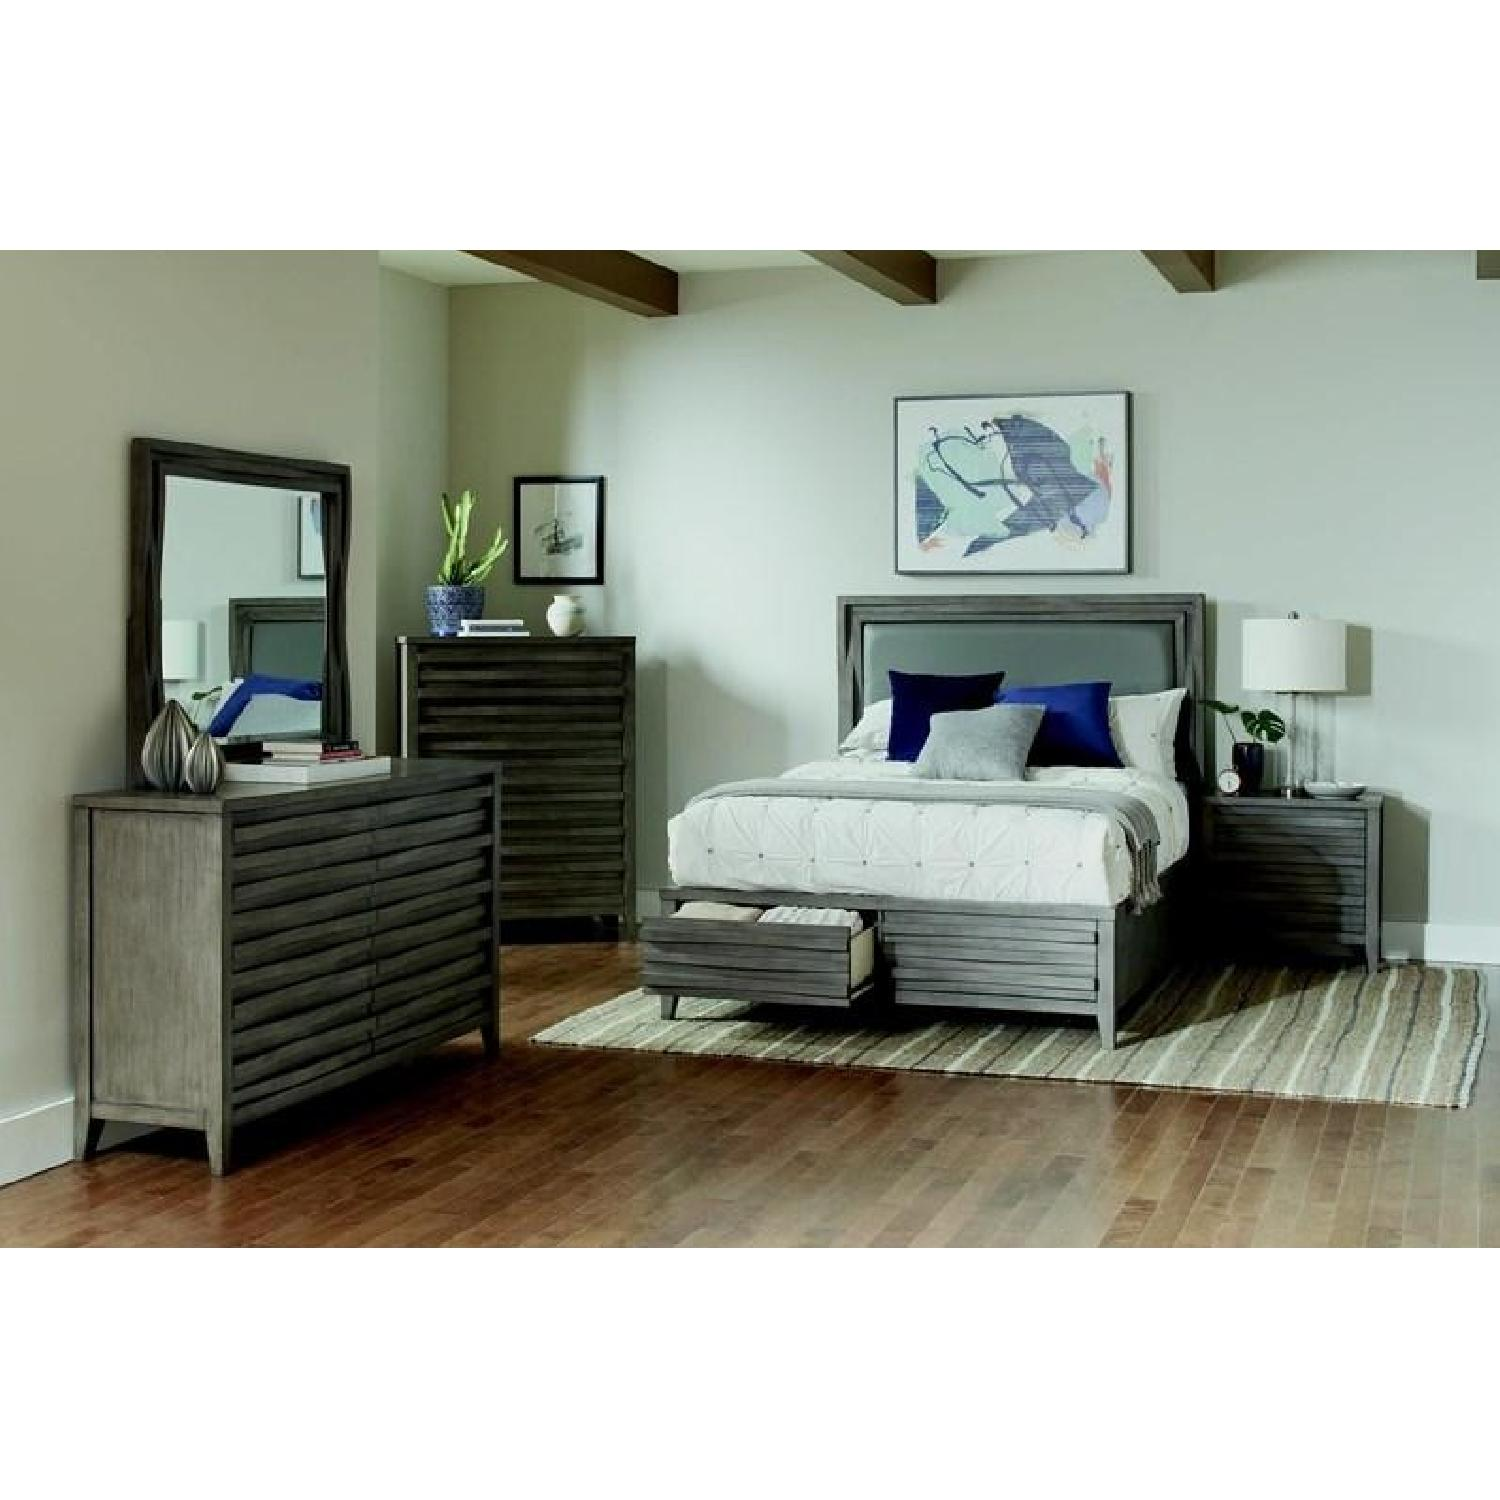 Queen Bed in Dark Taupe w/ 2 Storage Drawers - image-7